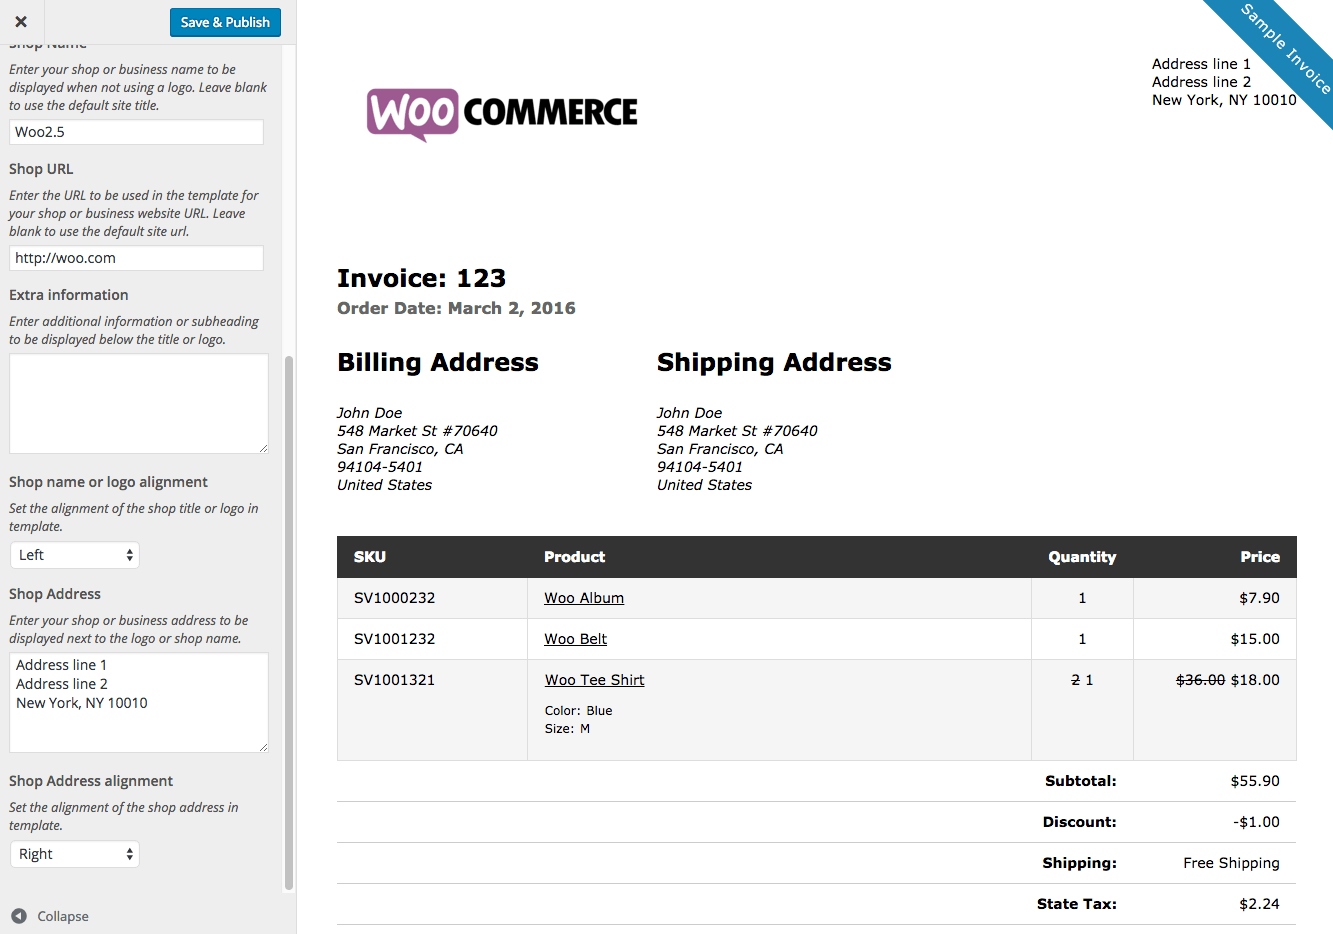 Hucareus  Wonderful Woocommerce Print Invoices Amp Packing Lists  Woocommerce Docs With Foxy Woocommerce Print Invoices  Packing Lists Customizer With Beautiful Kroger Return Policy Without Receipt Also Can You Return Something To Kohls Without A Receipt In Addition Confirmation Of Receipt And Online Receipt As Well As Child Care Receipt Additionally Budget Toll Receipts From Docswoocommercecom With Hucareus  Foxy Woocommerce Print Invoices Amp Packing Lists  Woocommerce Docs With Beautiful Woocommerce Print Invoices  Packing Lists Customizer And Wonderful Kroger Return Policy Without Receipt Also Can You Return Something To Kohls Without A Receipt In Addition Confirmation Of Receipt From Docswoocommercecom